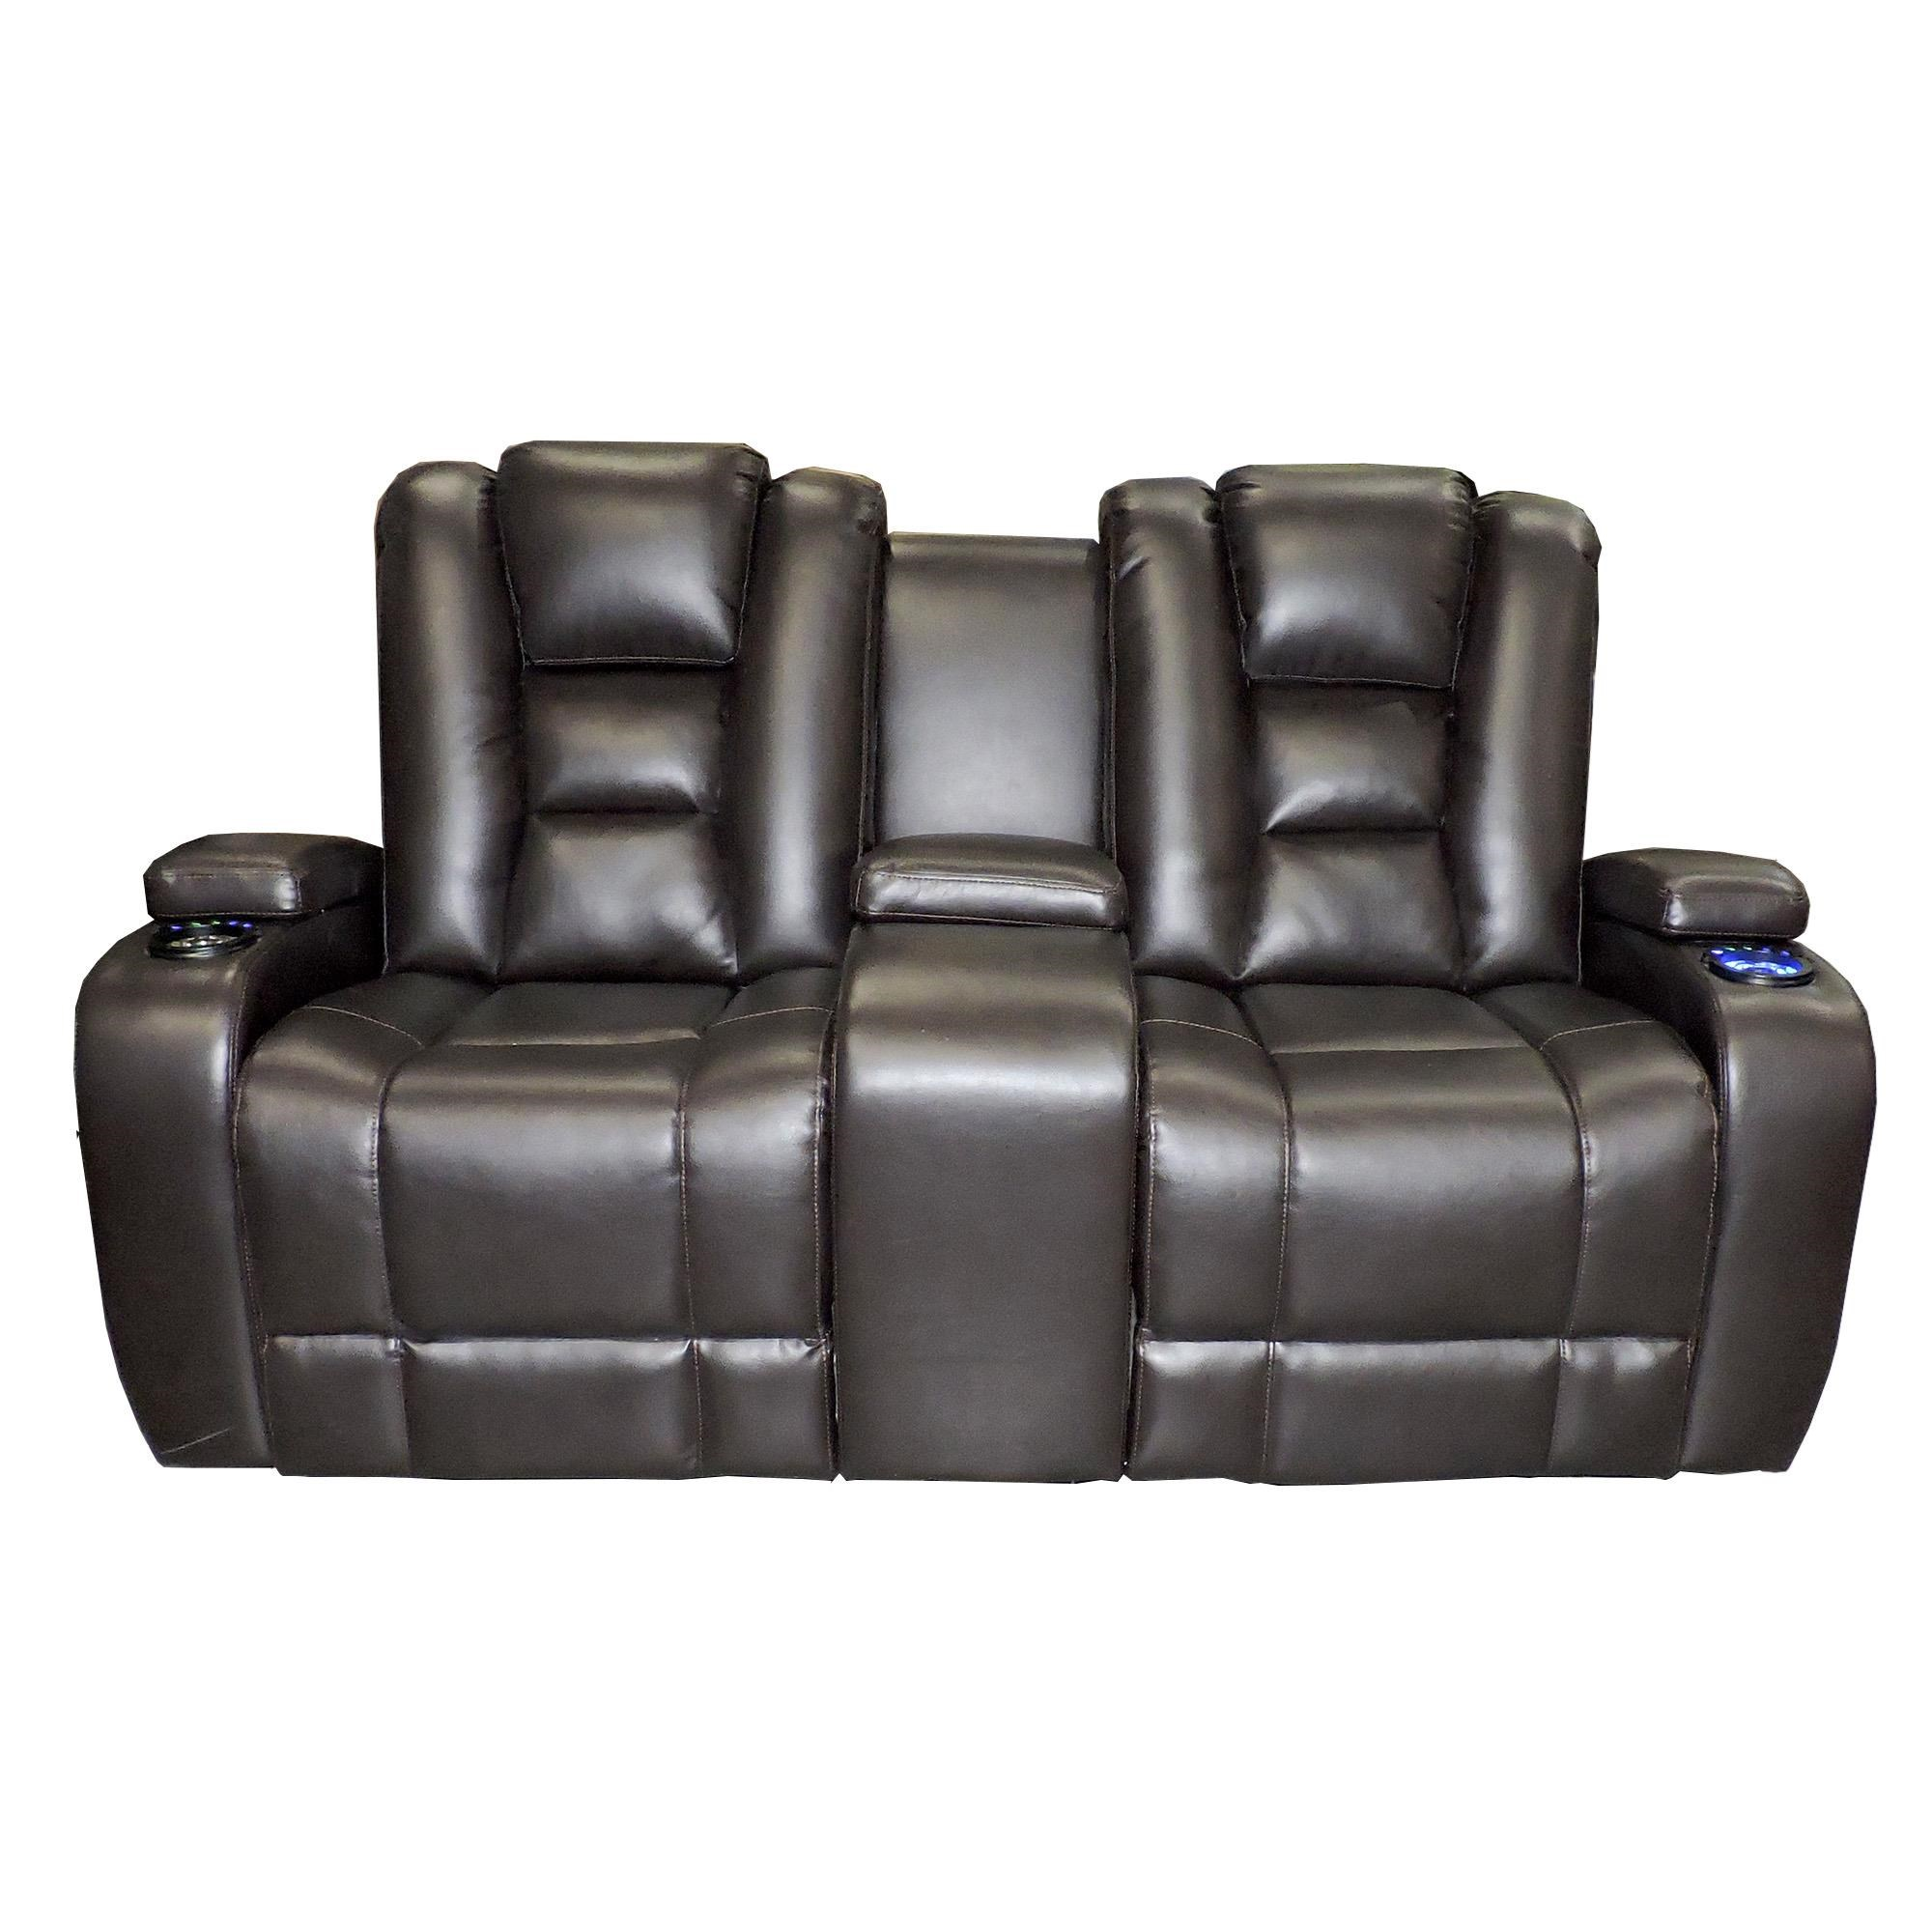 Synergy Home Furnishings 378  Power Reclining Loveseat - Item Number: 378-73PWR